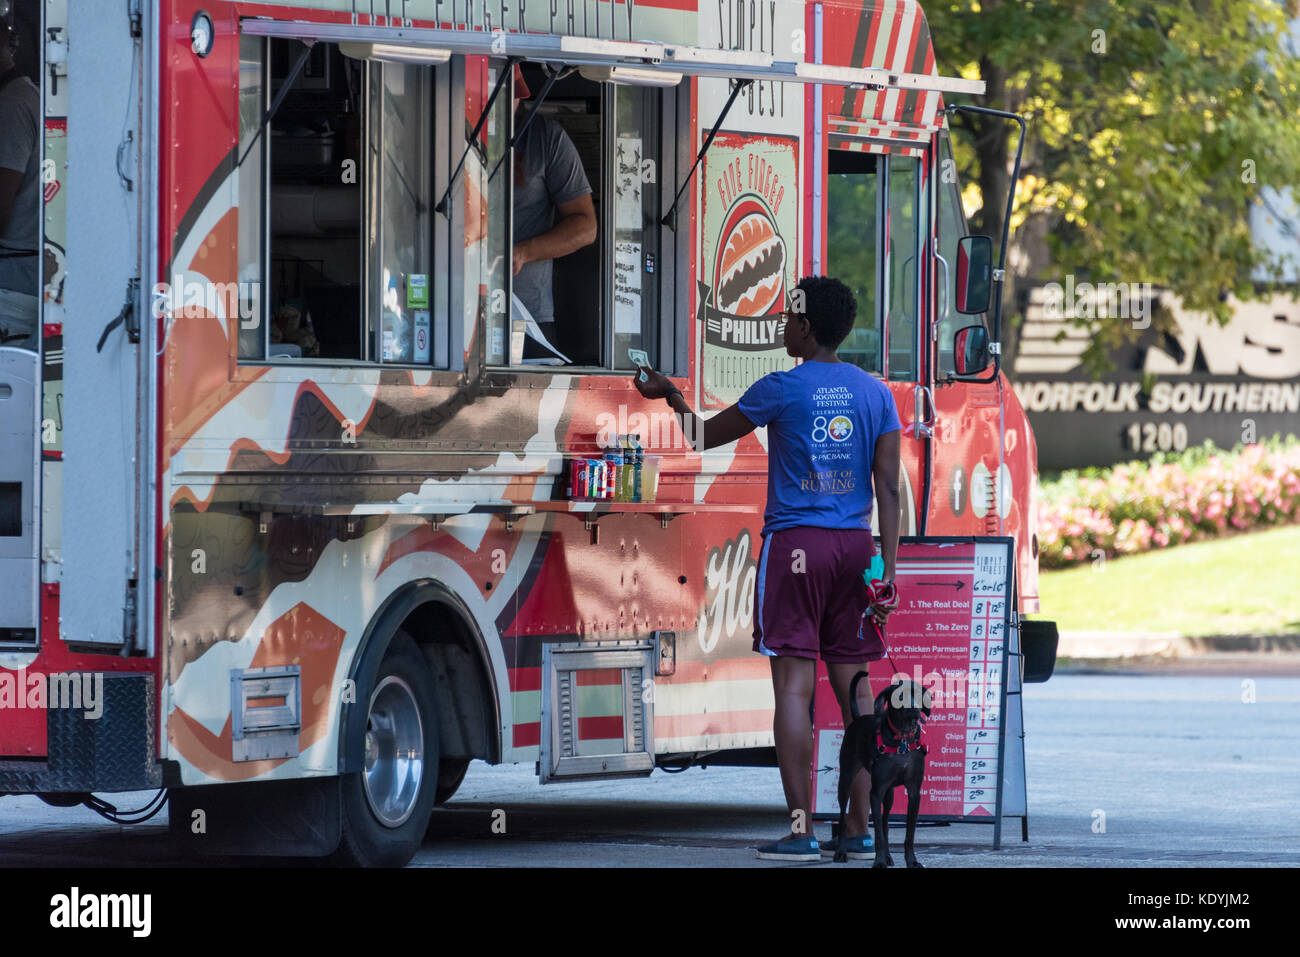 Food truck vendor at Colony Square on Peachtree Street in Midtown Atlanta, Georgia. (USA) - Stock Image